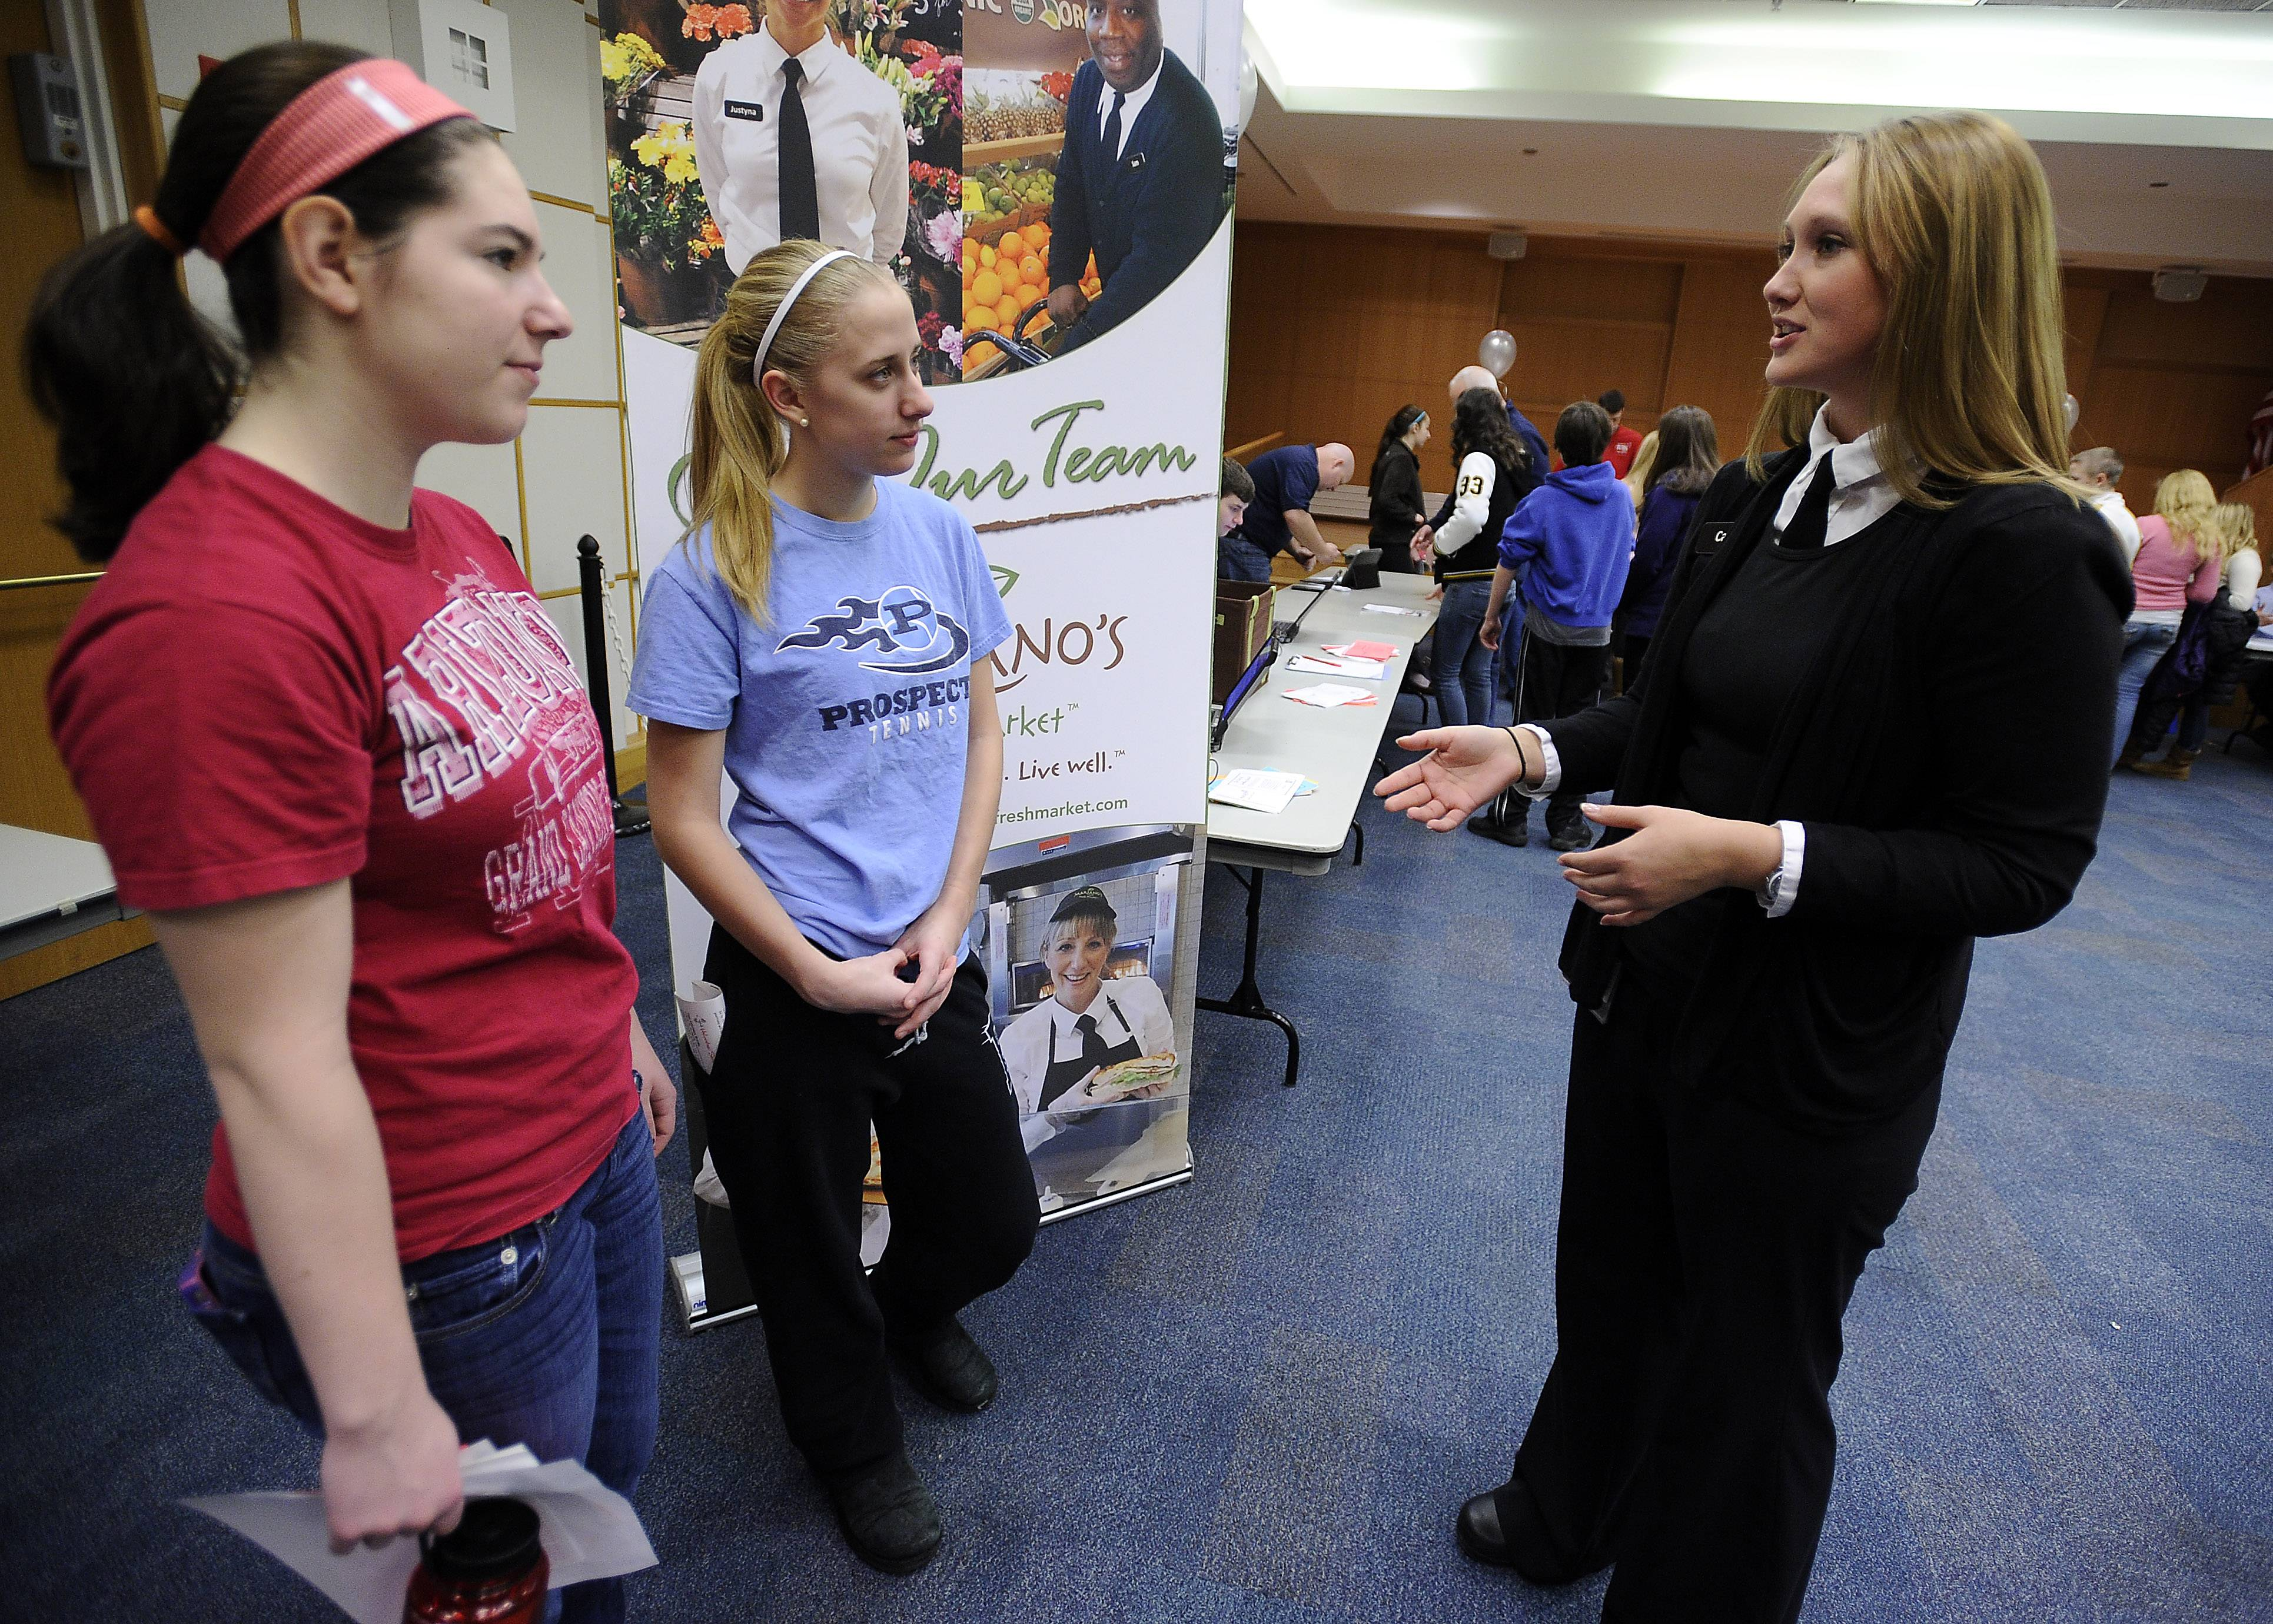 Prospect High School students Jessica Hirsh and Lauren Becherer were among nearly 300 teens to show up for last year's Arlington Heights Teen Job Fair, but representatives of only 10 businesses -- including Cari Henderson of the Mariano's Fresh Market -- were there. Organizers are working to get a larger business presence at this year's event, scheduled for March 8.